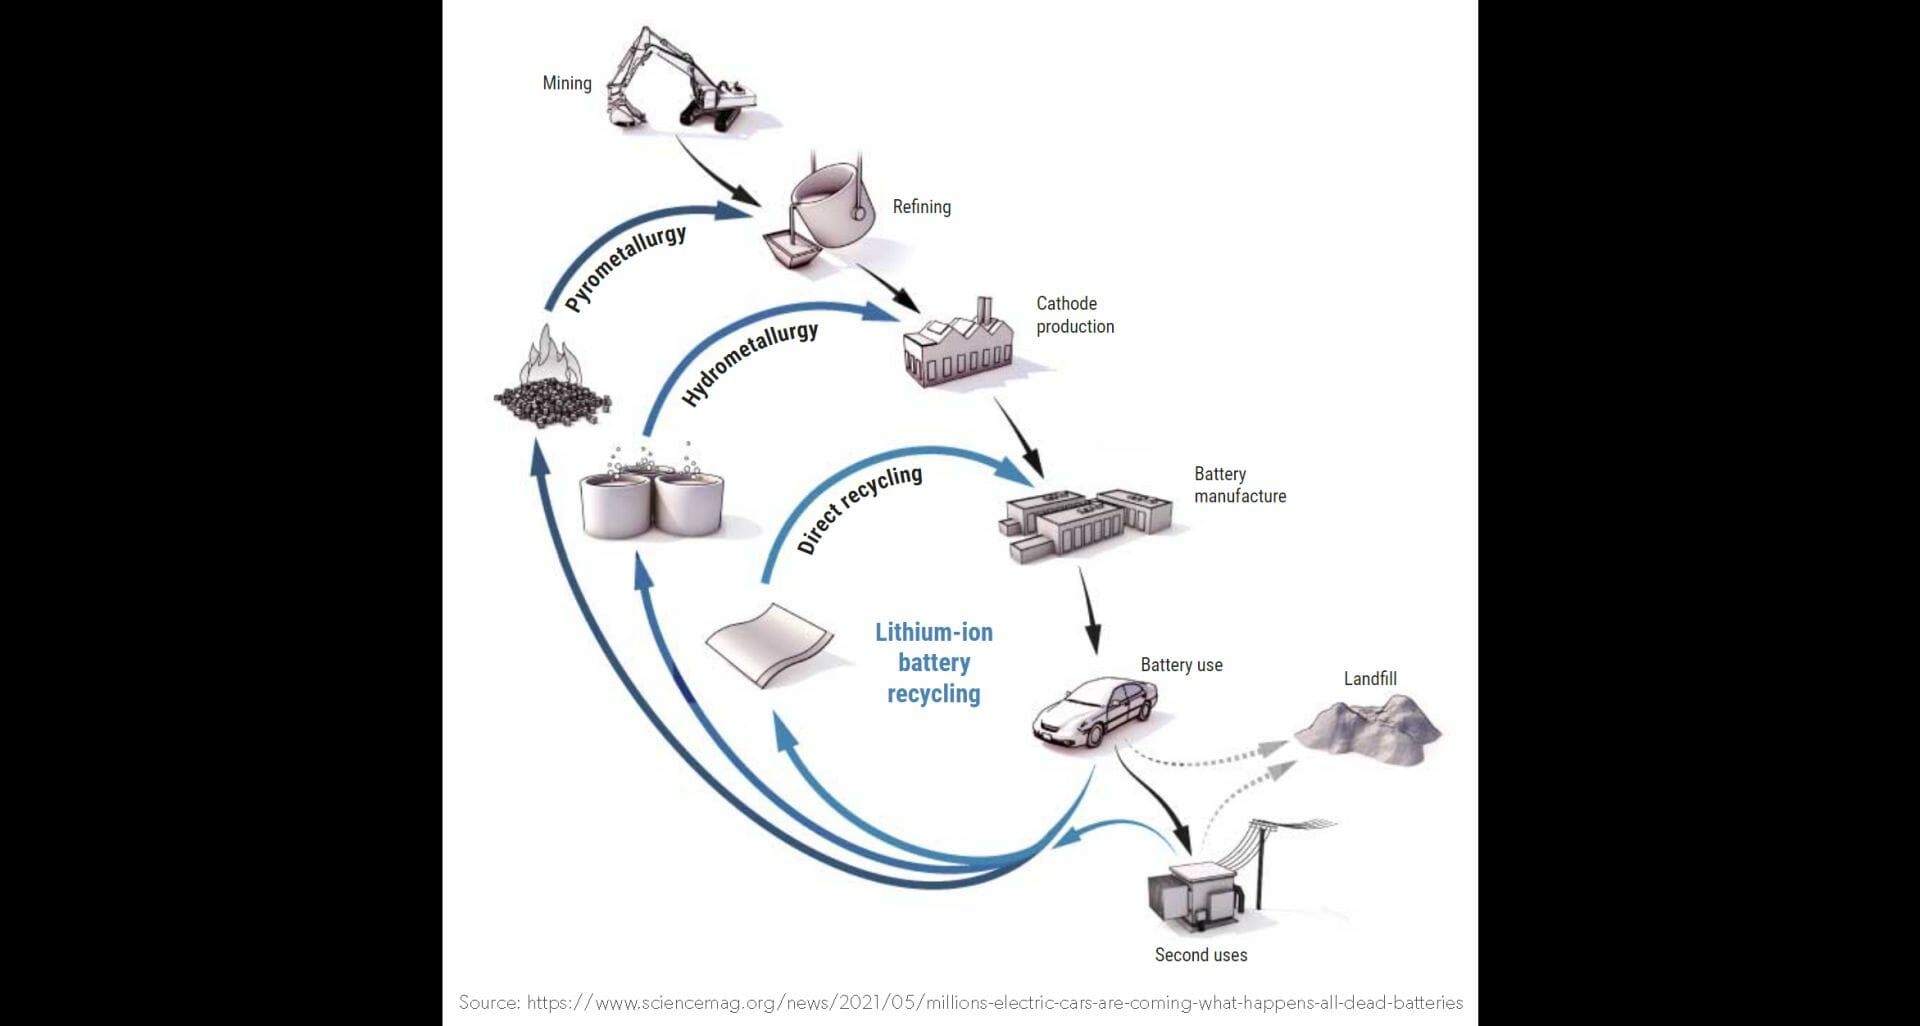 electric vehicle battery recycling diagram